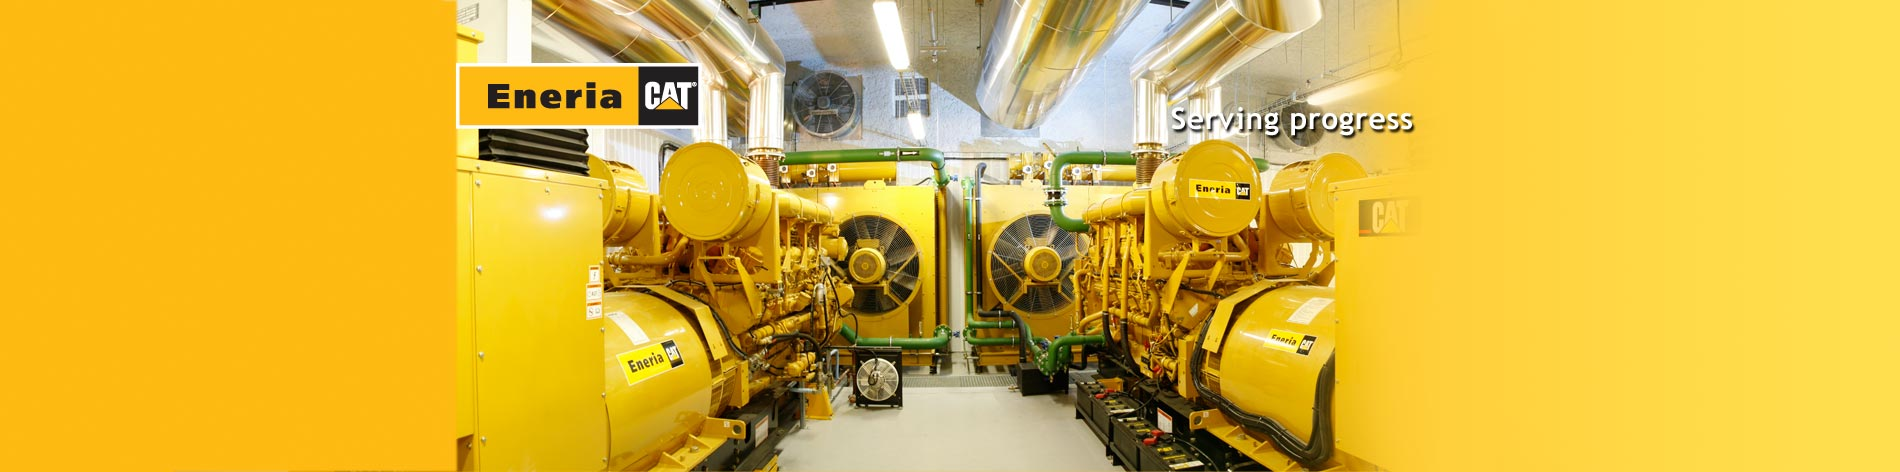 Our Caterpillar diesel generator sets are suited to a variety of applications. Our testimonials prove it.